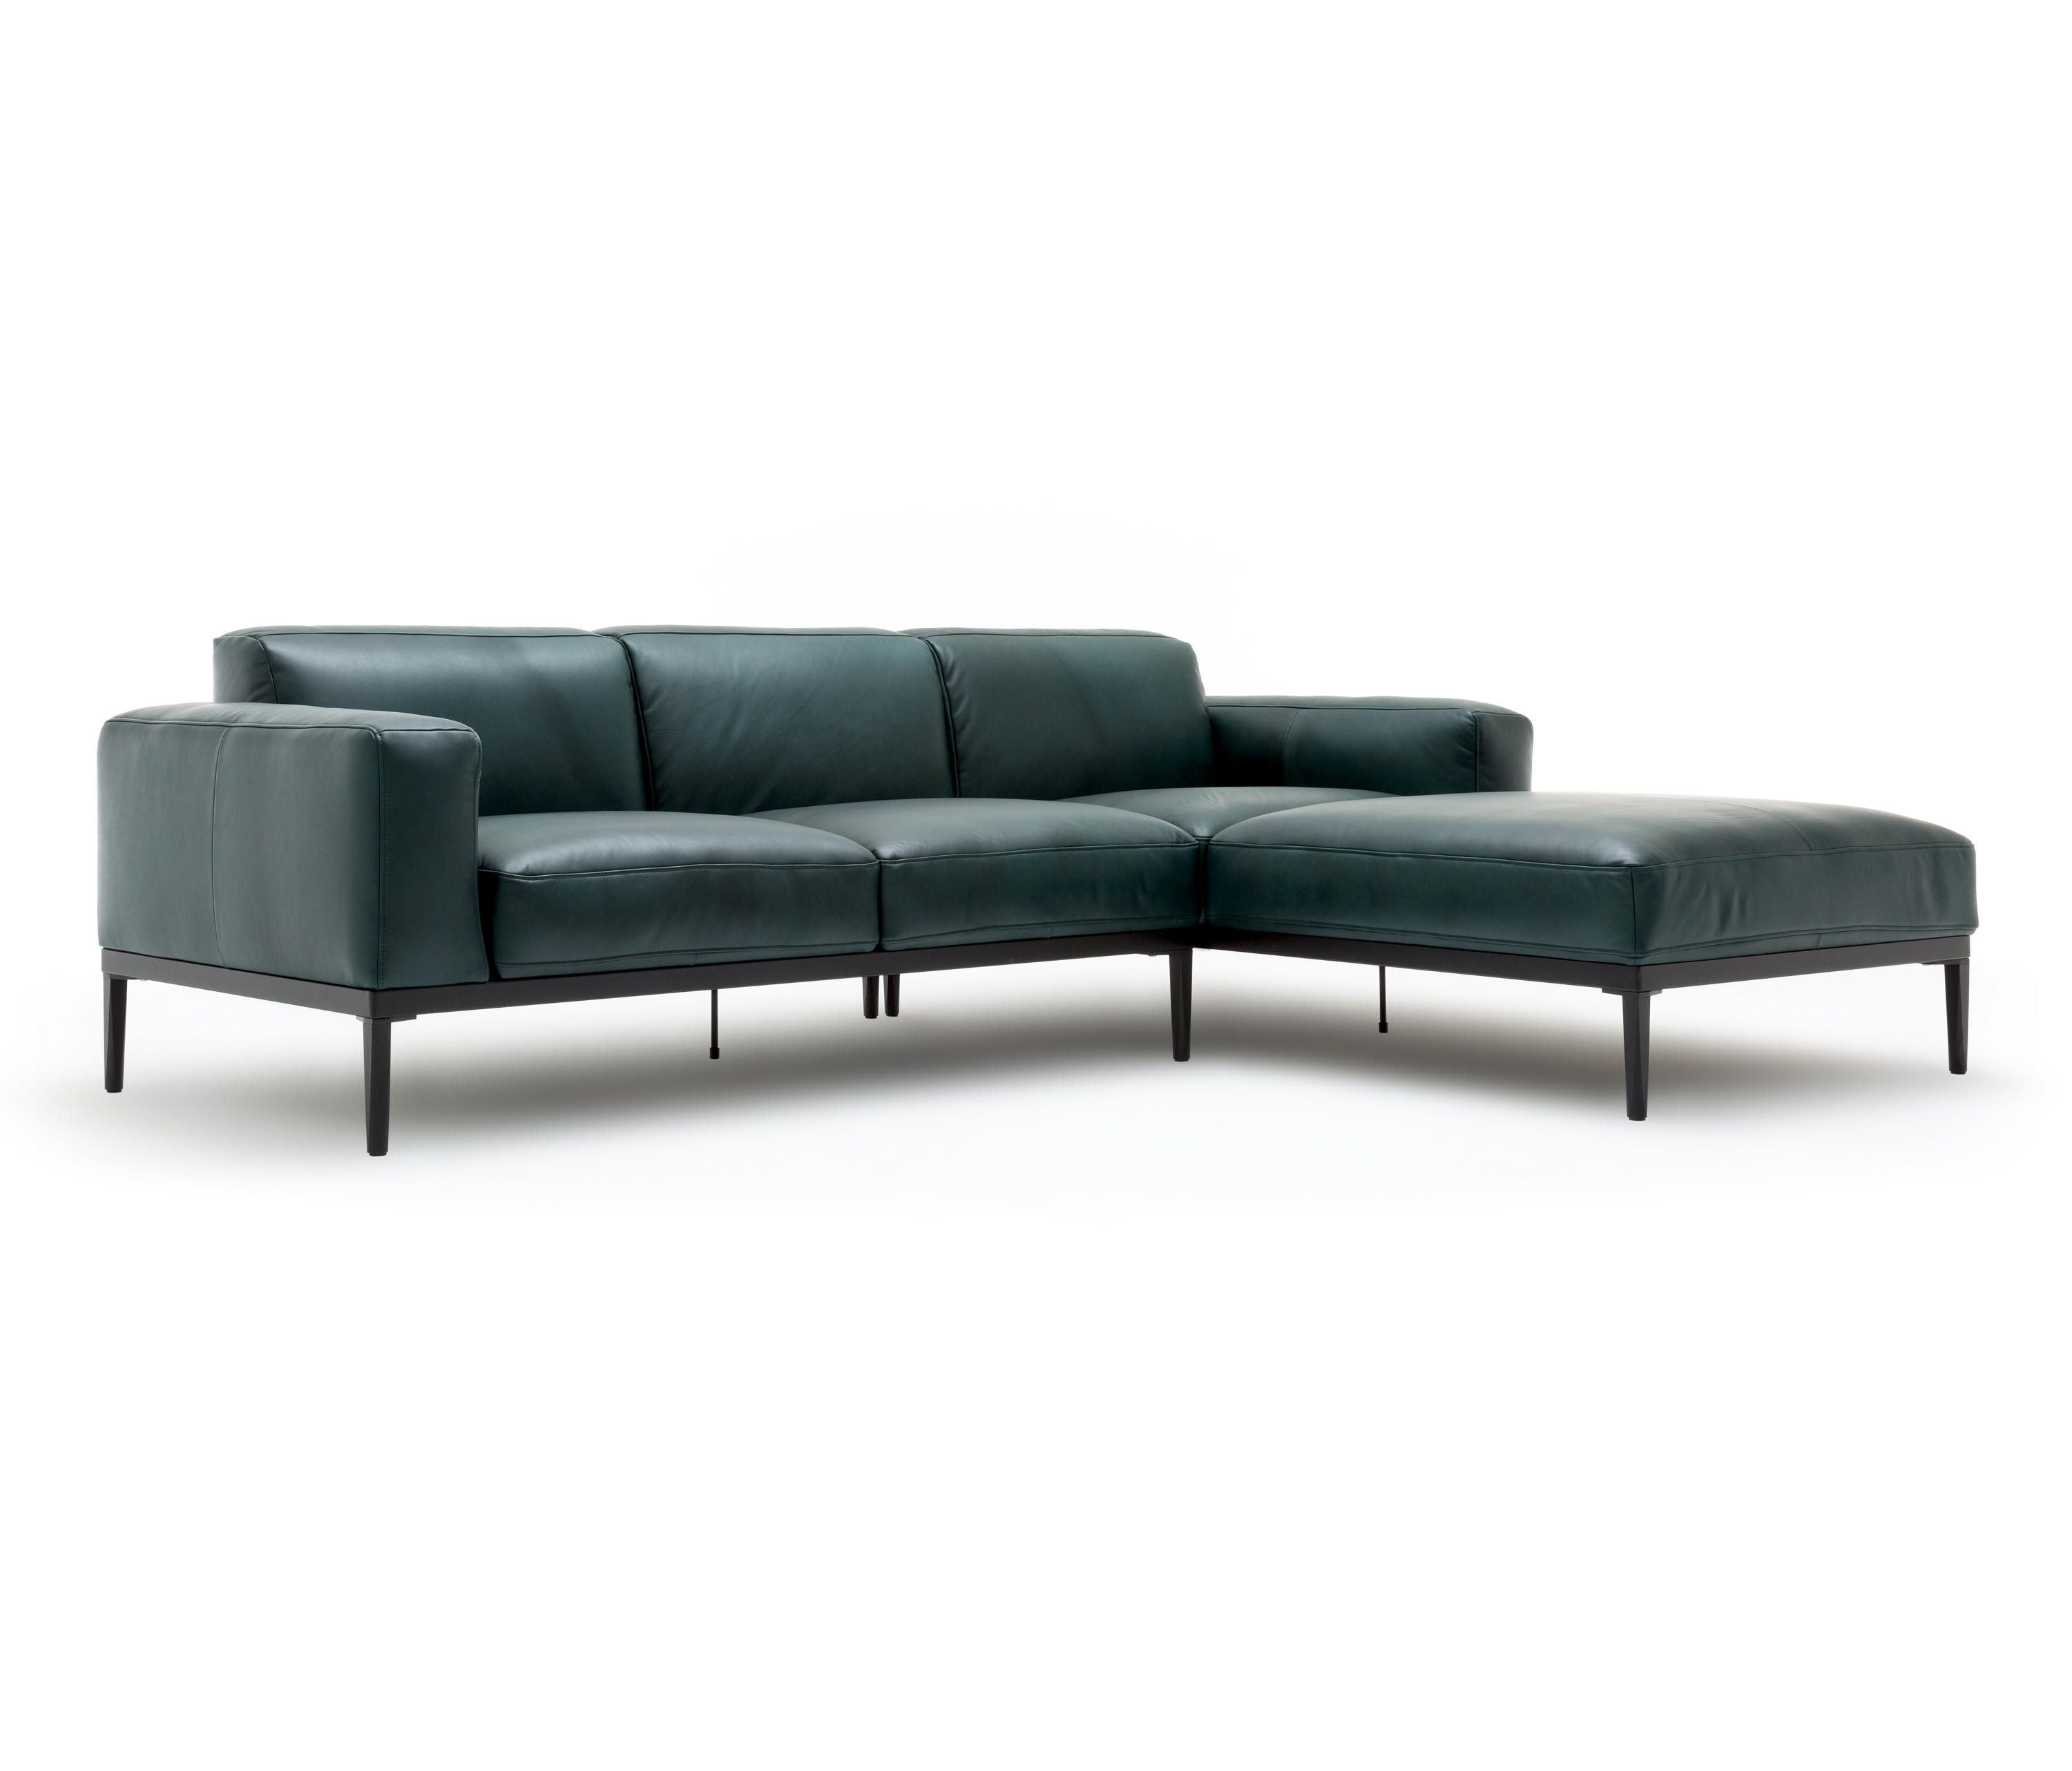 Pin By Anthi Kosmanou On Workplace Sofa Design Furniture Sectional Couch